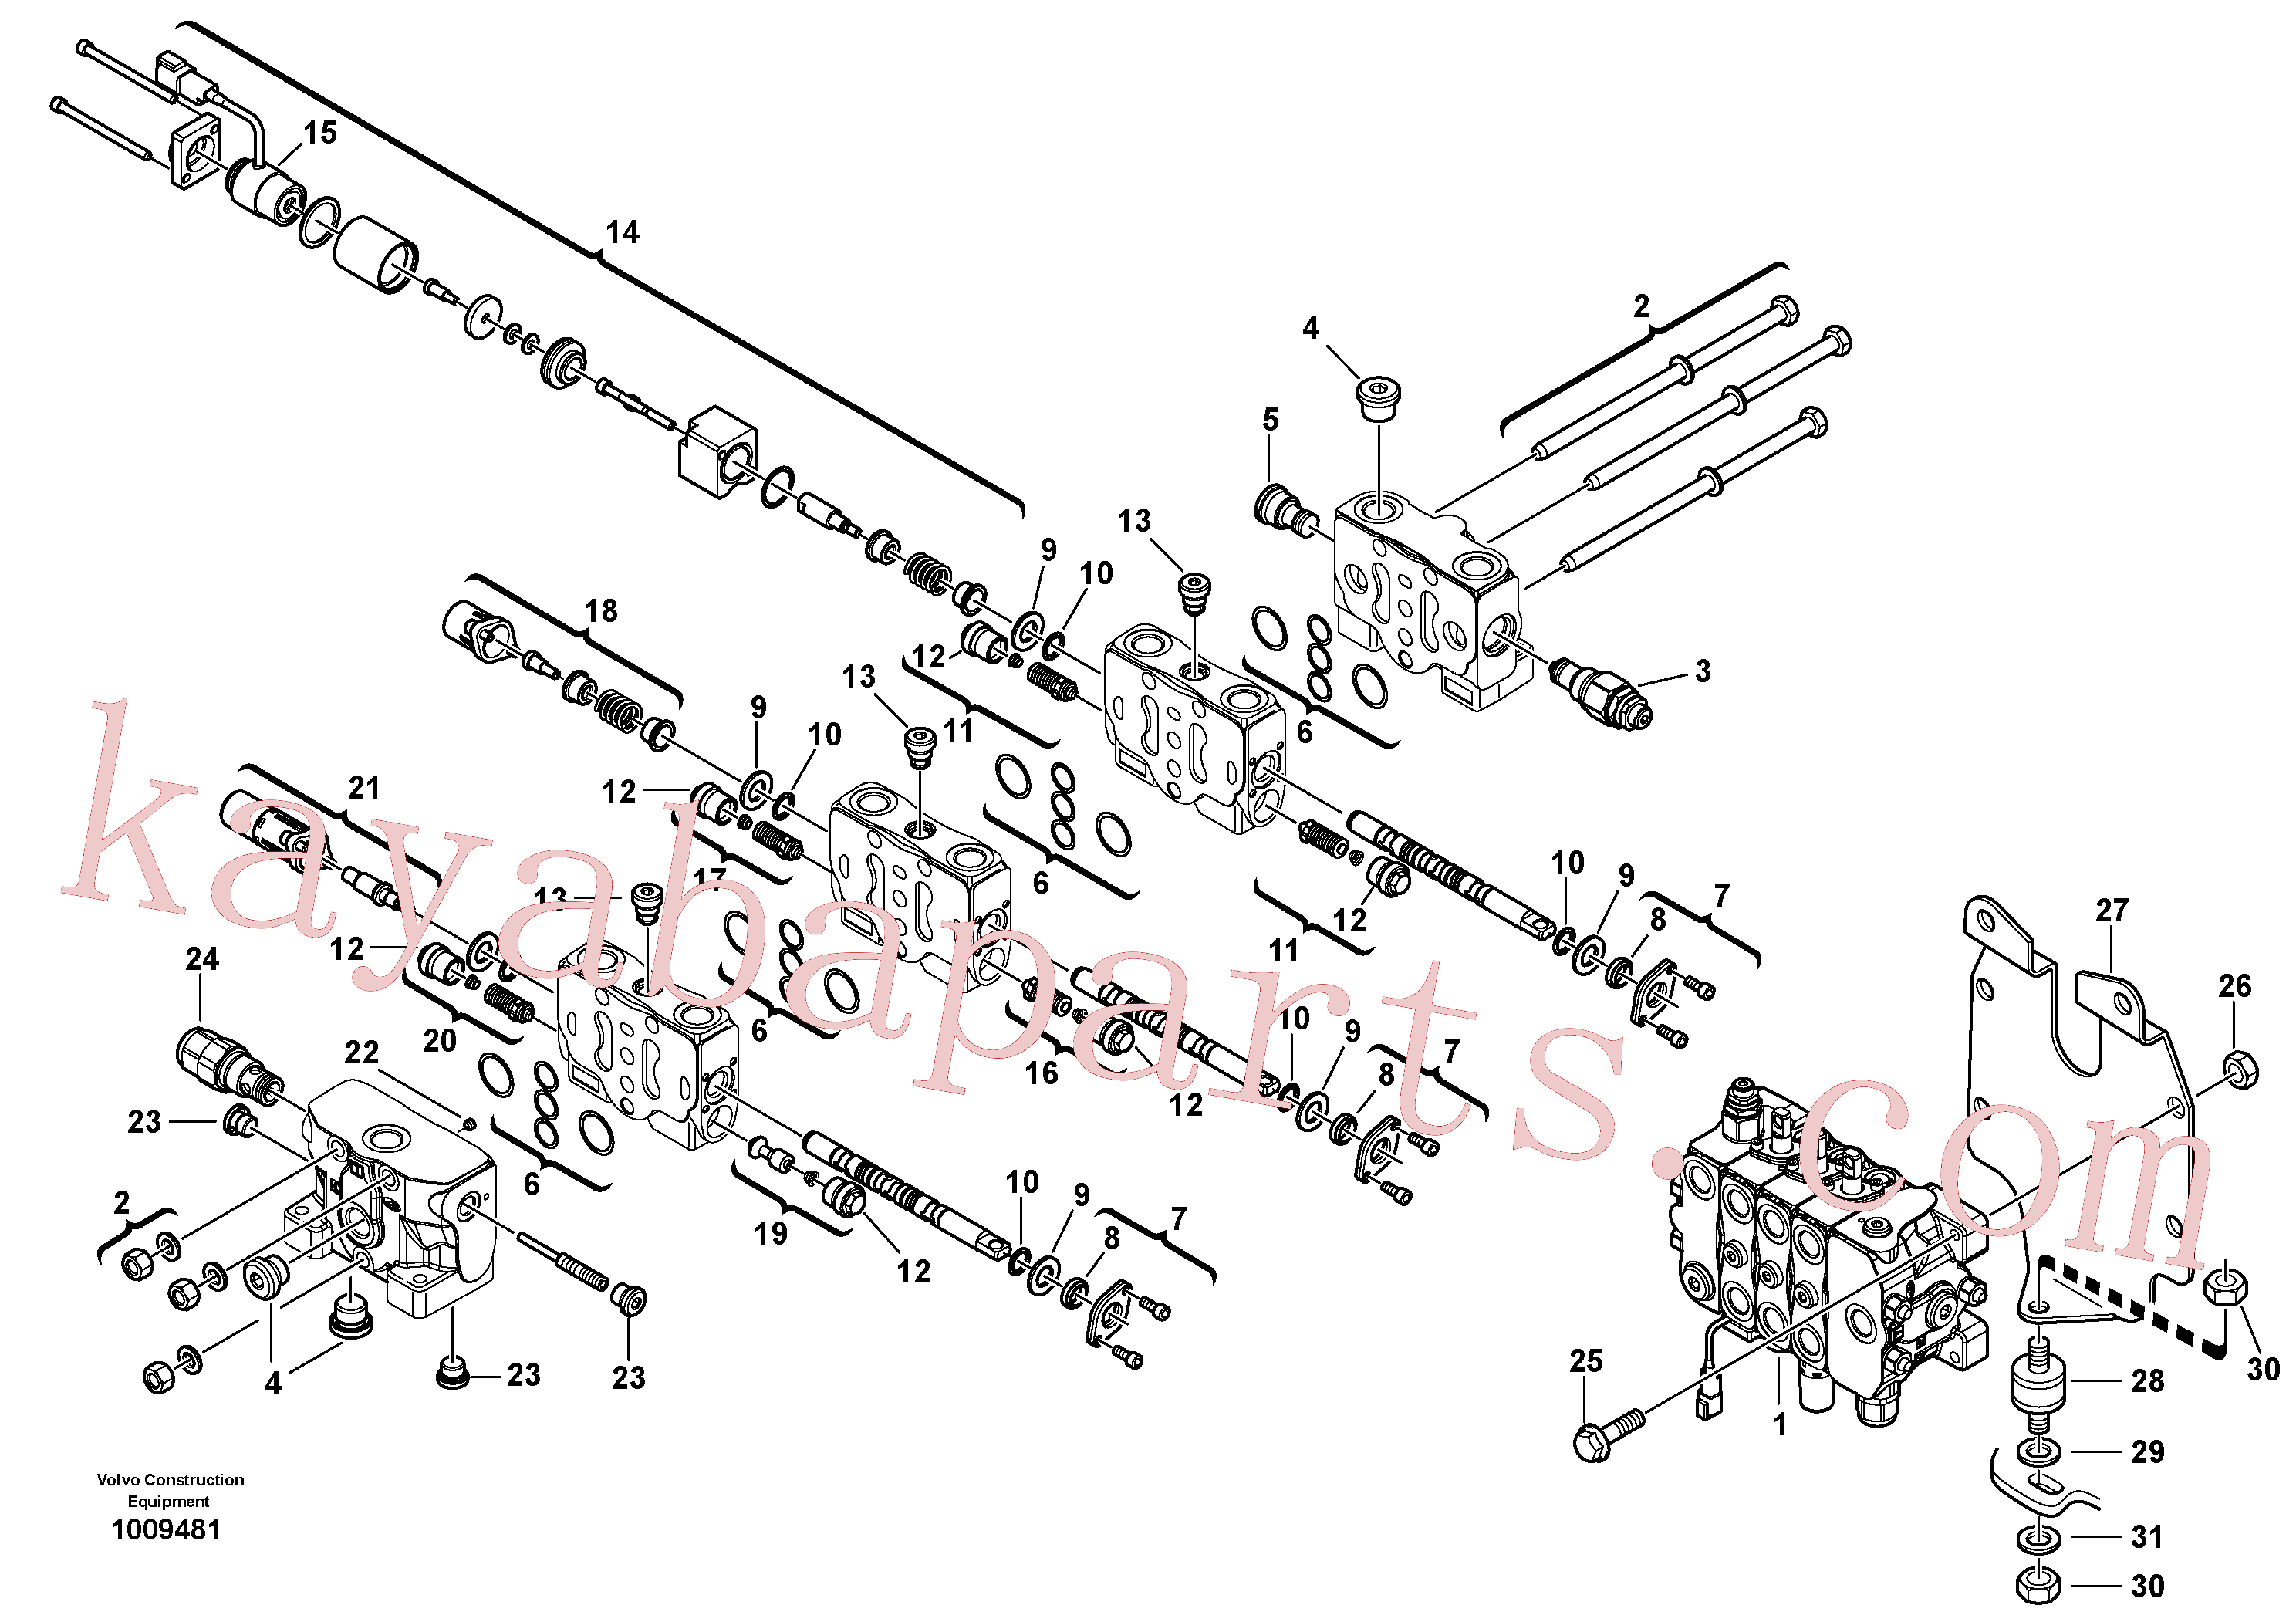 VOE11370785 for Volvo Control valve(1009481 assembly)